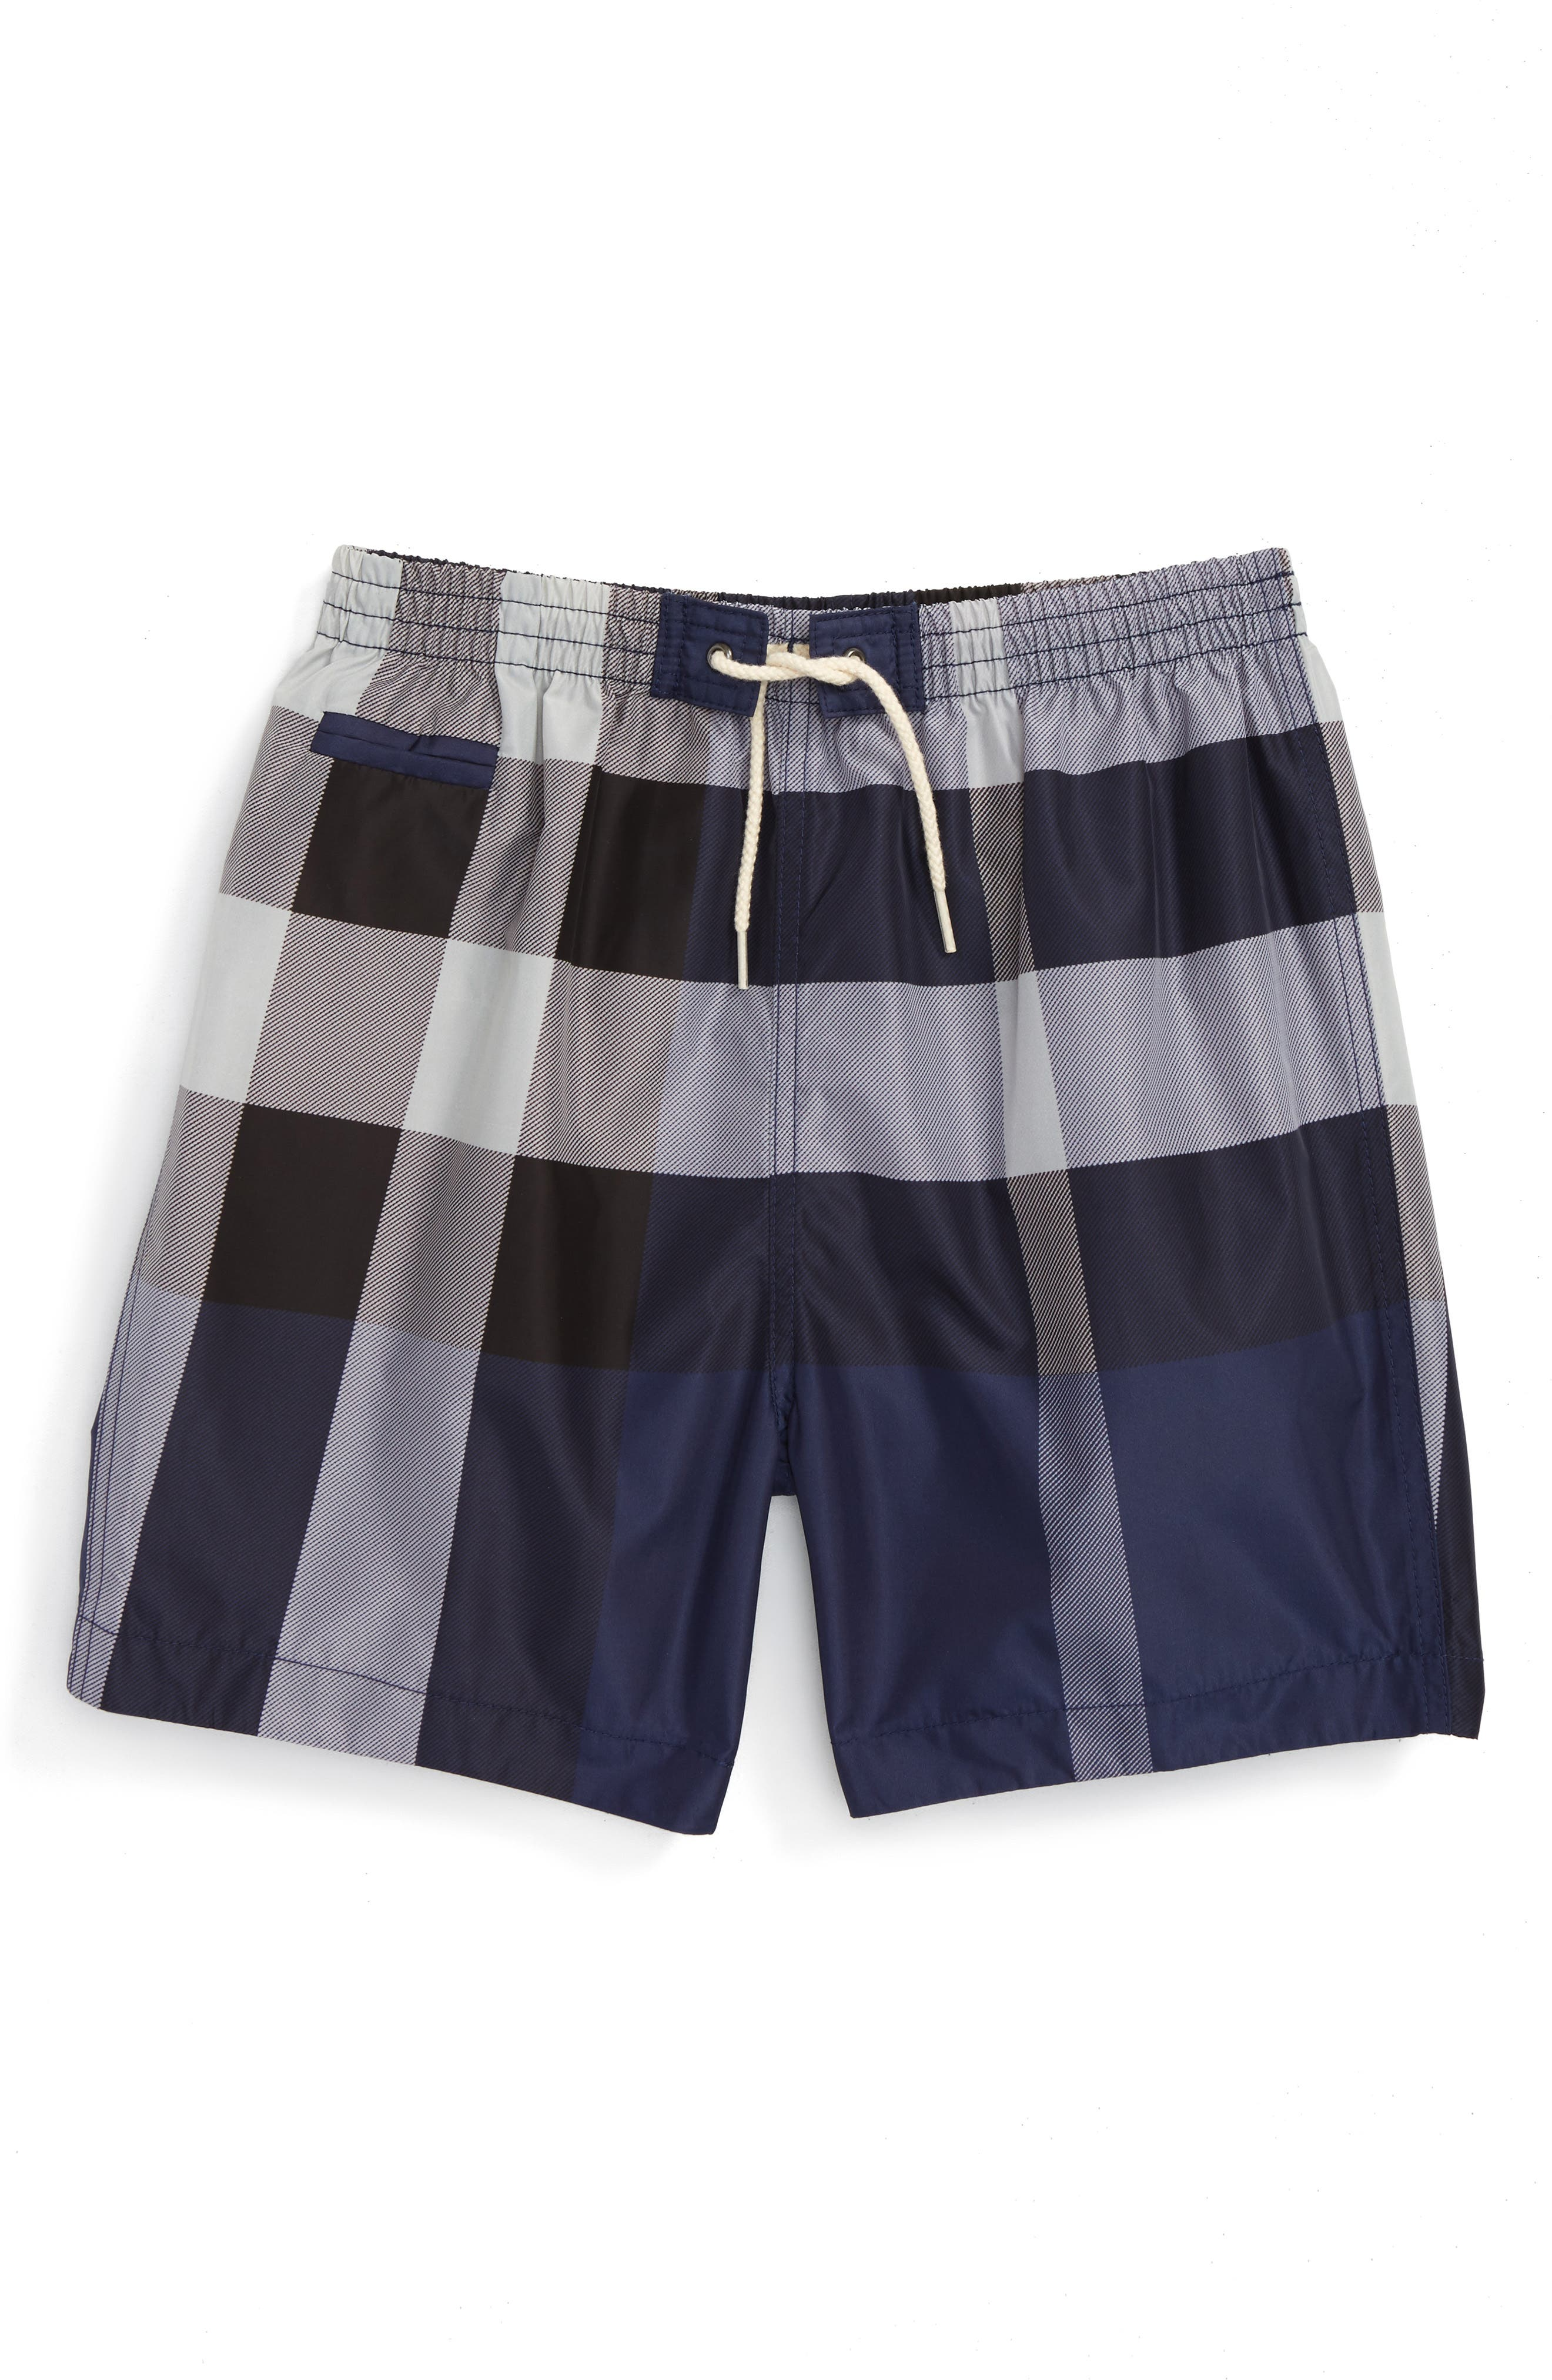 BURBERRY 'Saxon' Check Print Swim Trunks